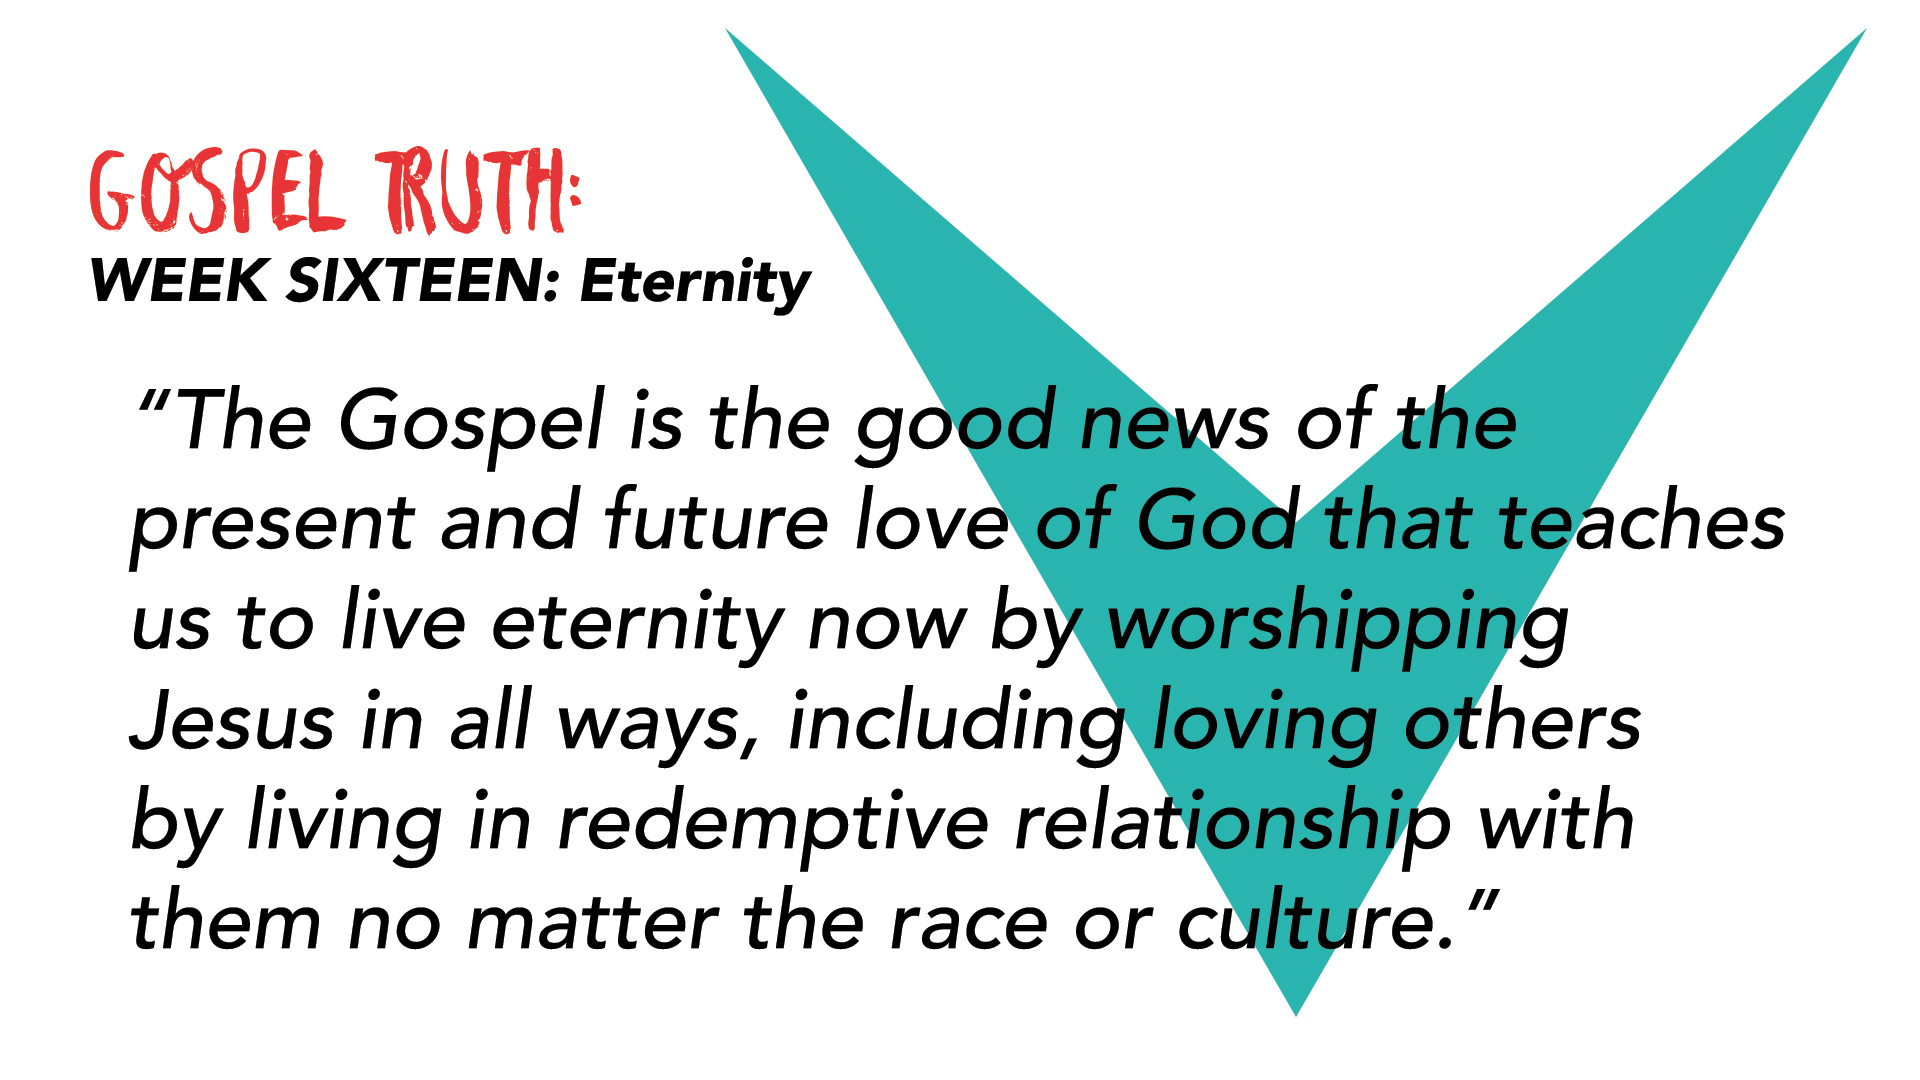 """The Gospel is the good news of the present and future love of God that teaches us to live eternity now by worshipping Jesus in all ways, including loving others by living in redemptive relationship with them no matter the race or culture."""